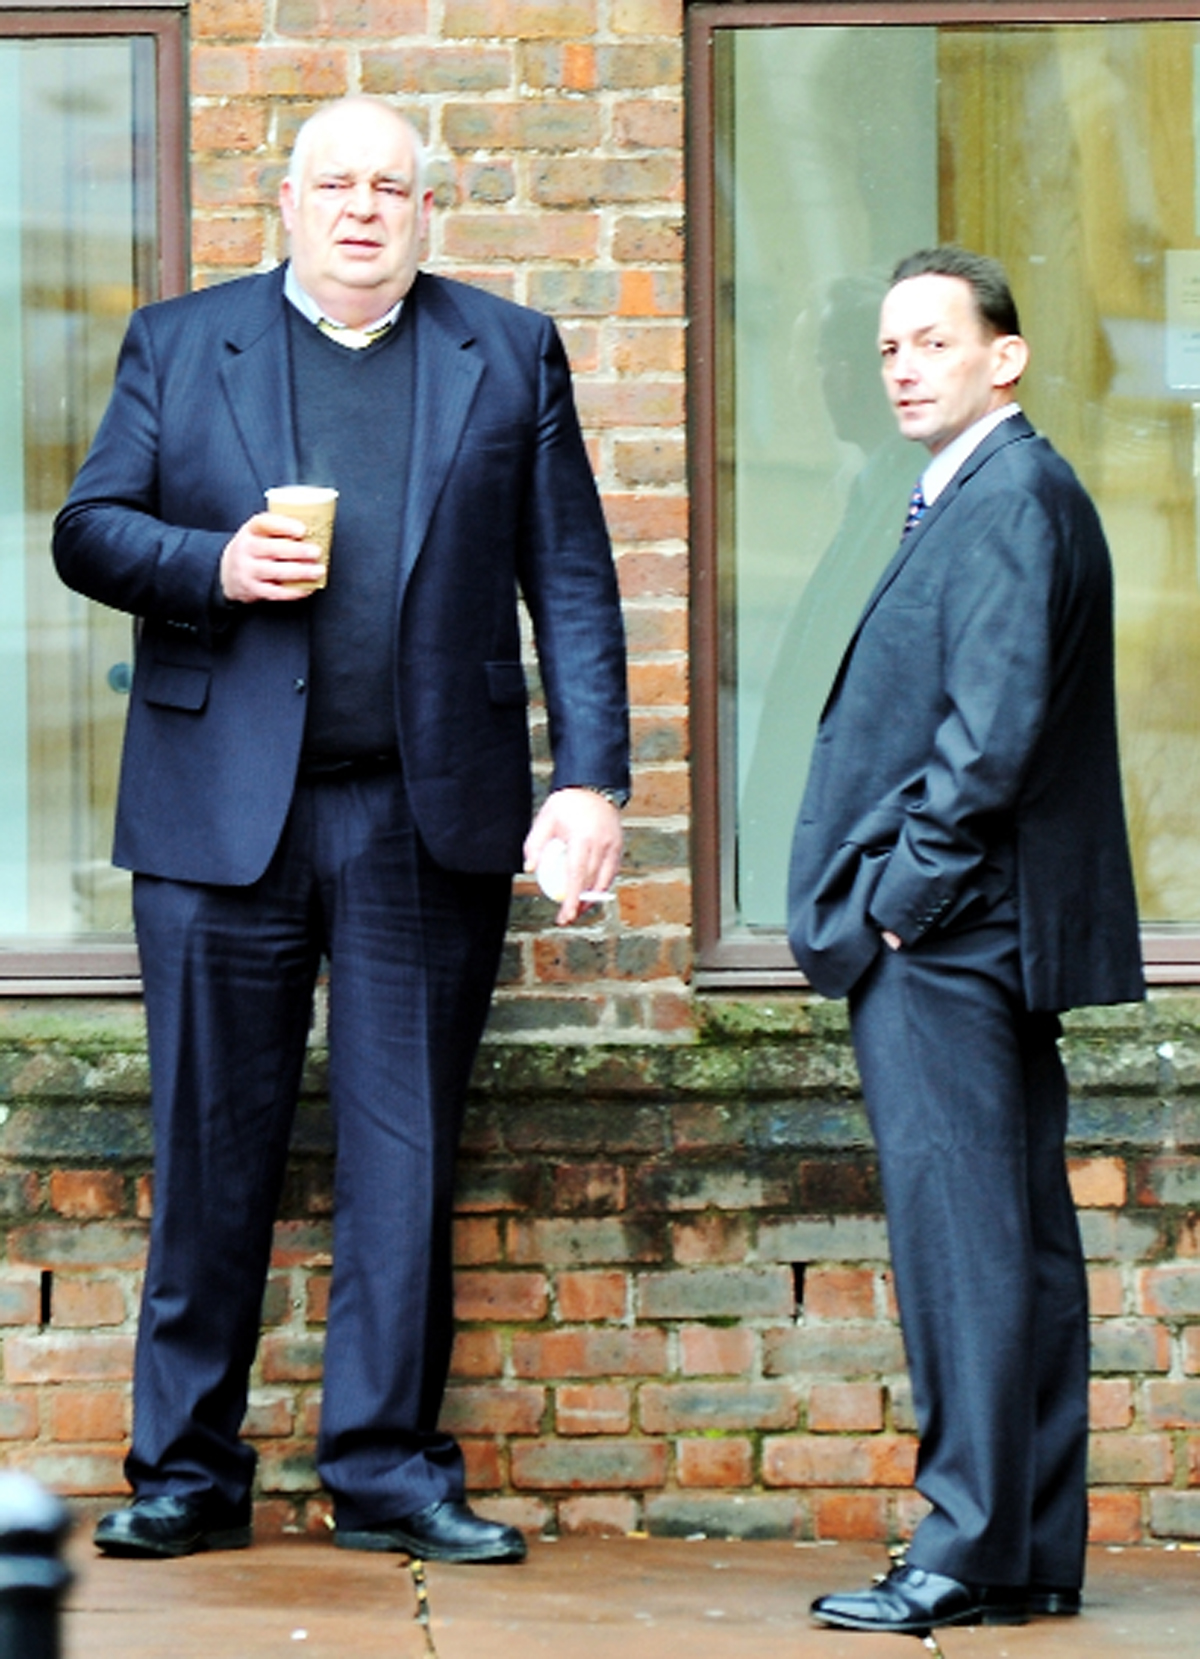 Derek Henderson, left, and Richard Hayes at Carlisle Crown Court